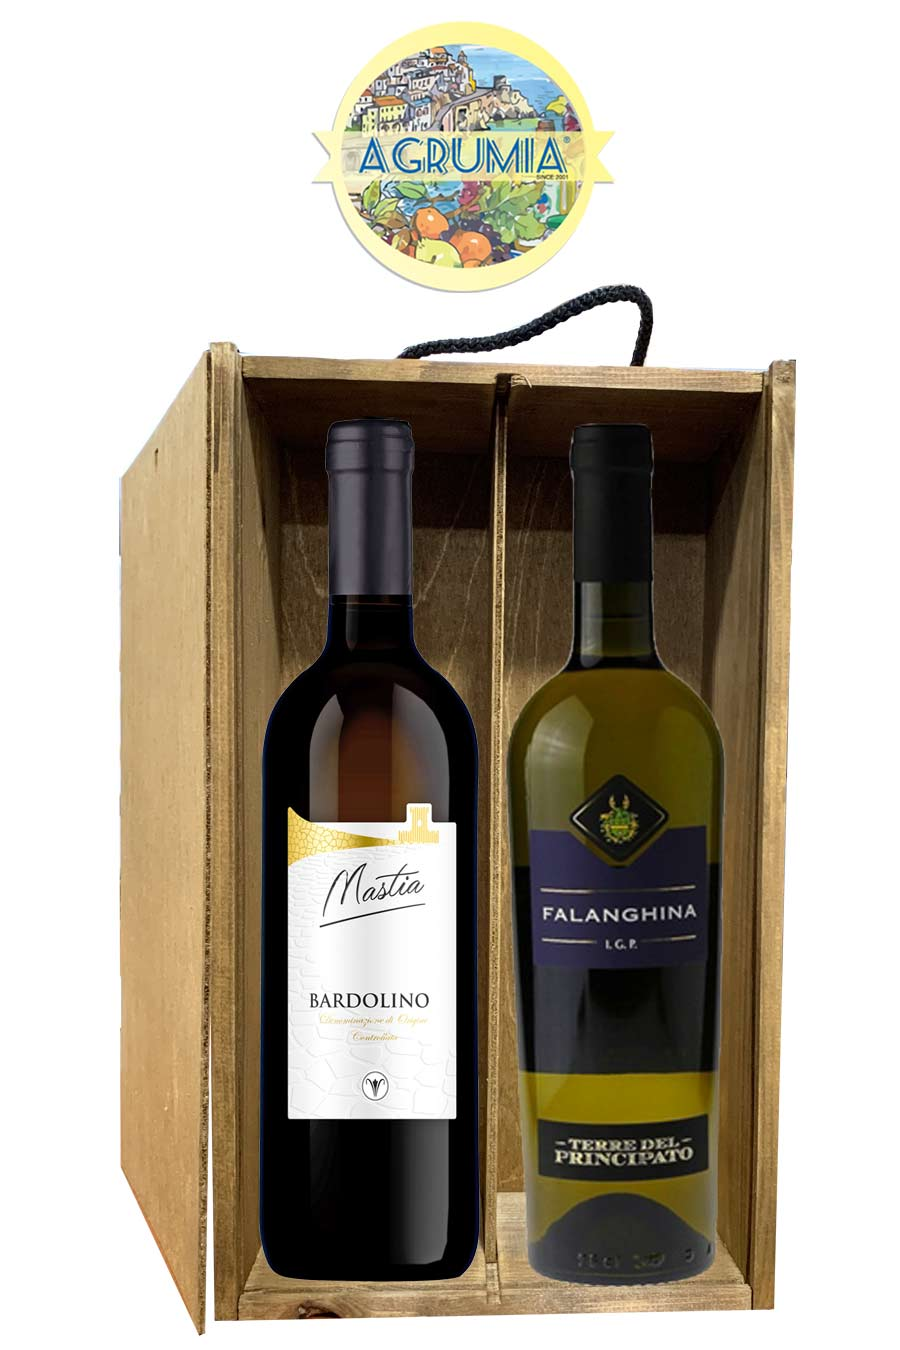 Agrumia Classic Twin Bottle Italian Wine Hamper